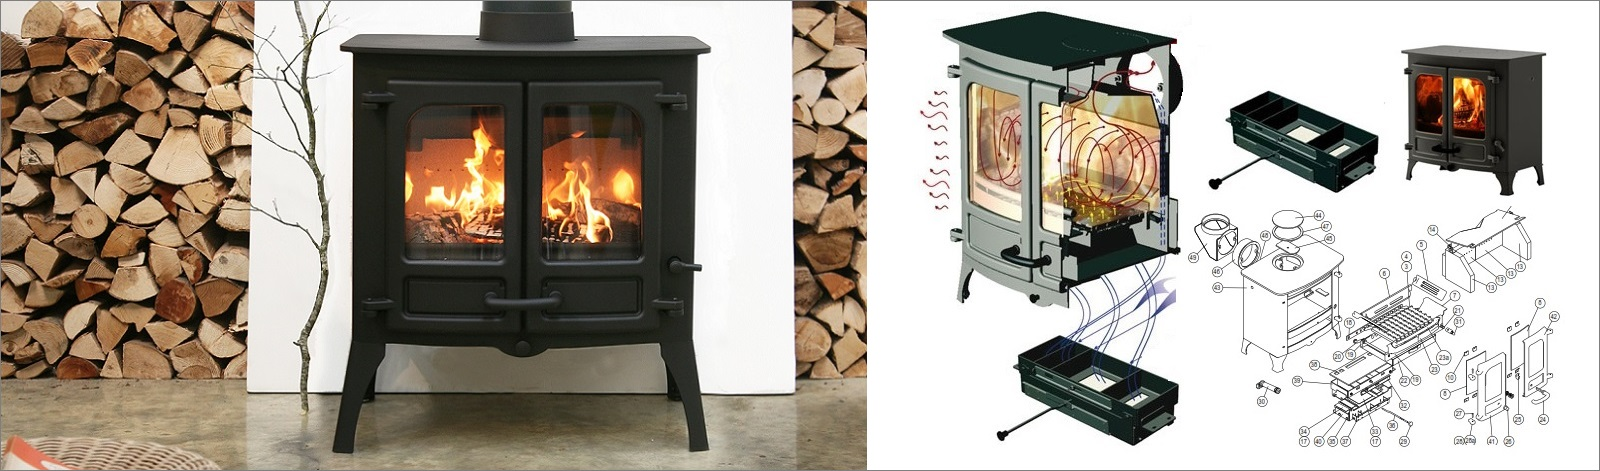 Woodburner Spares - UK Suppliers